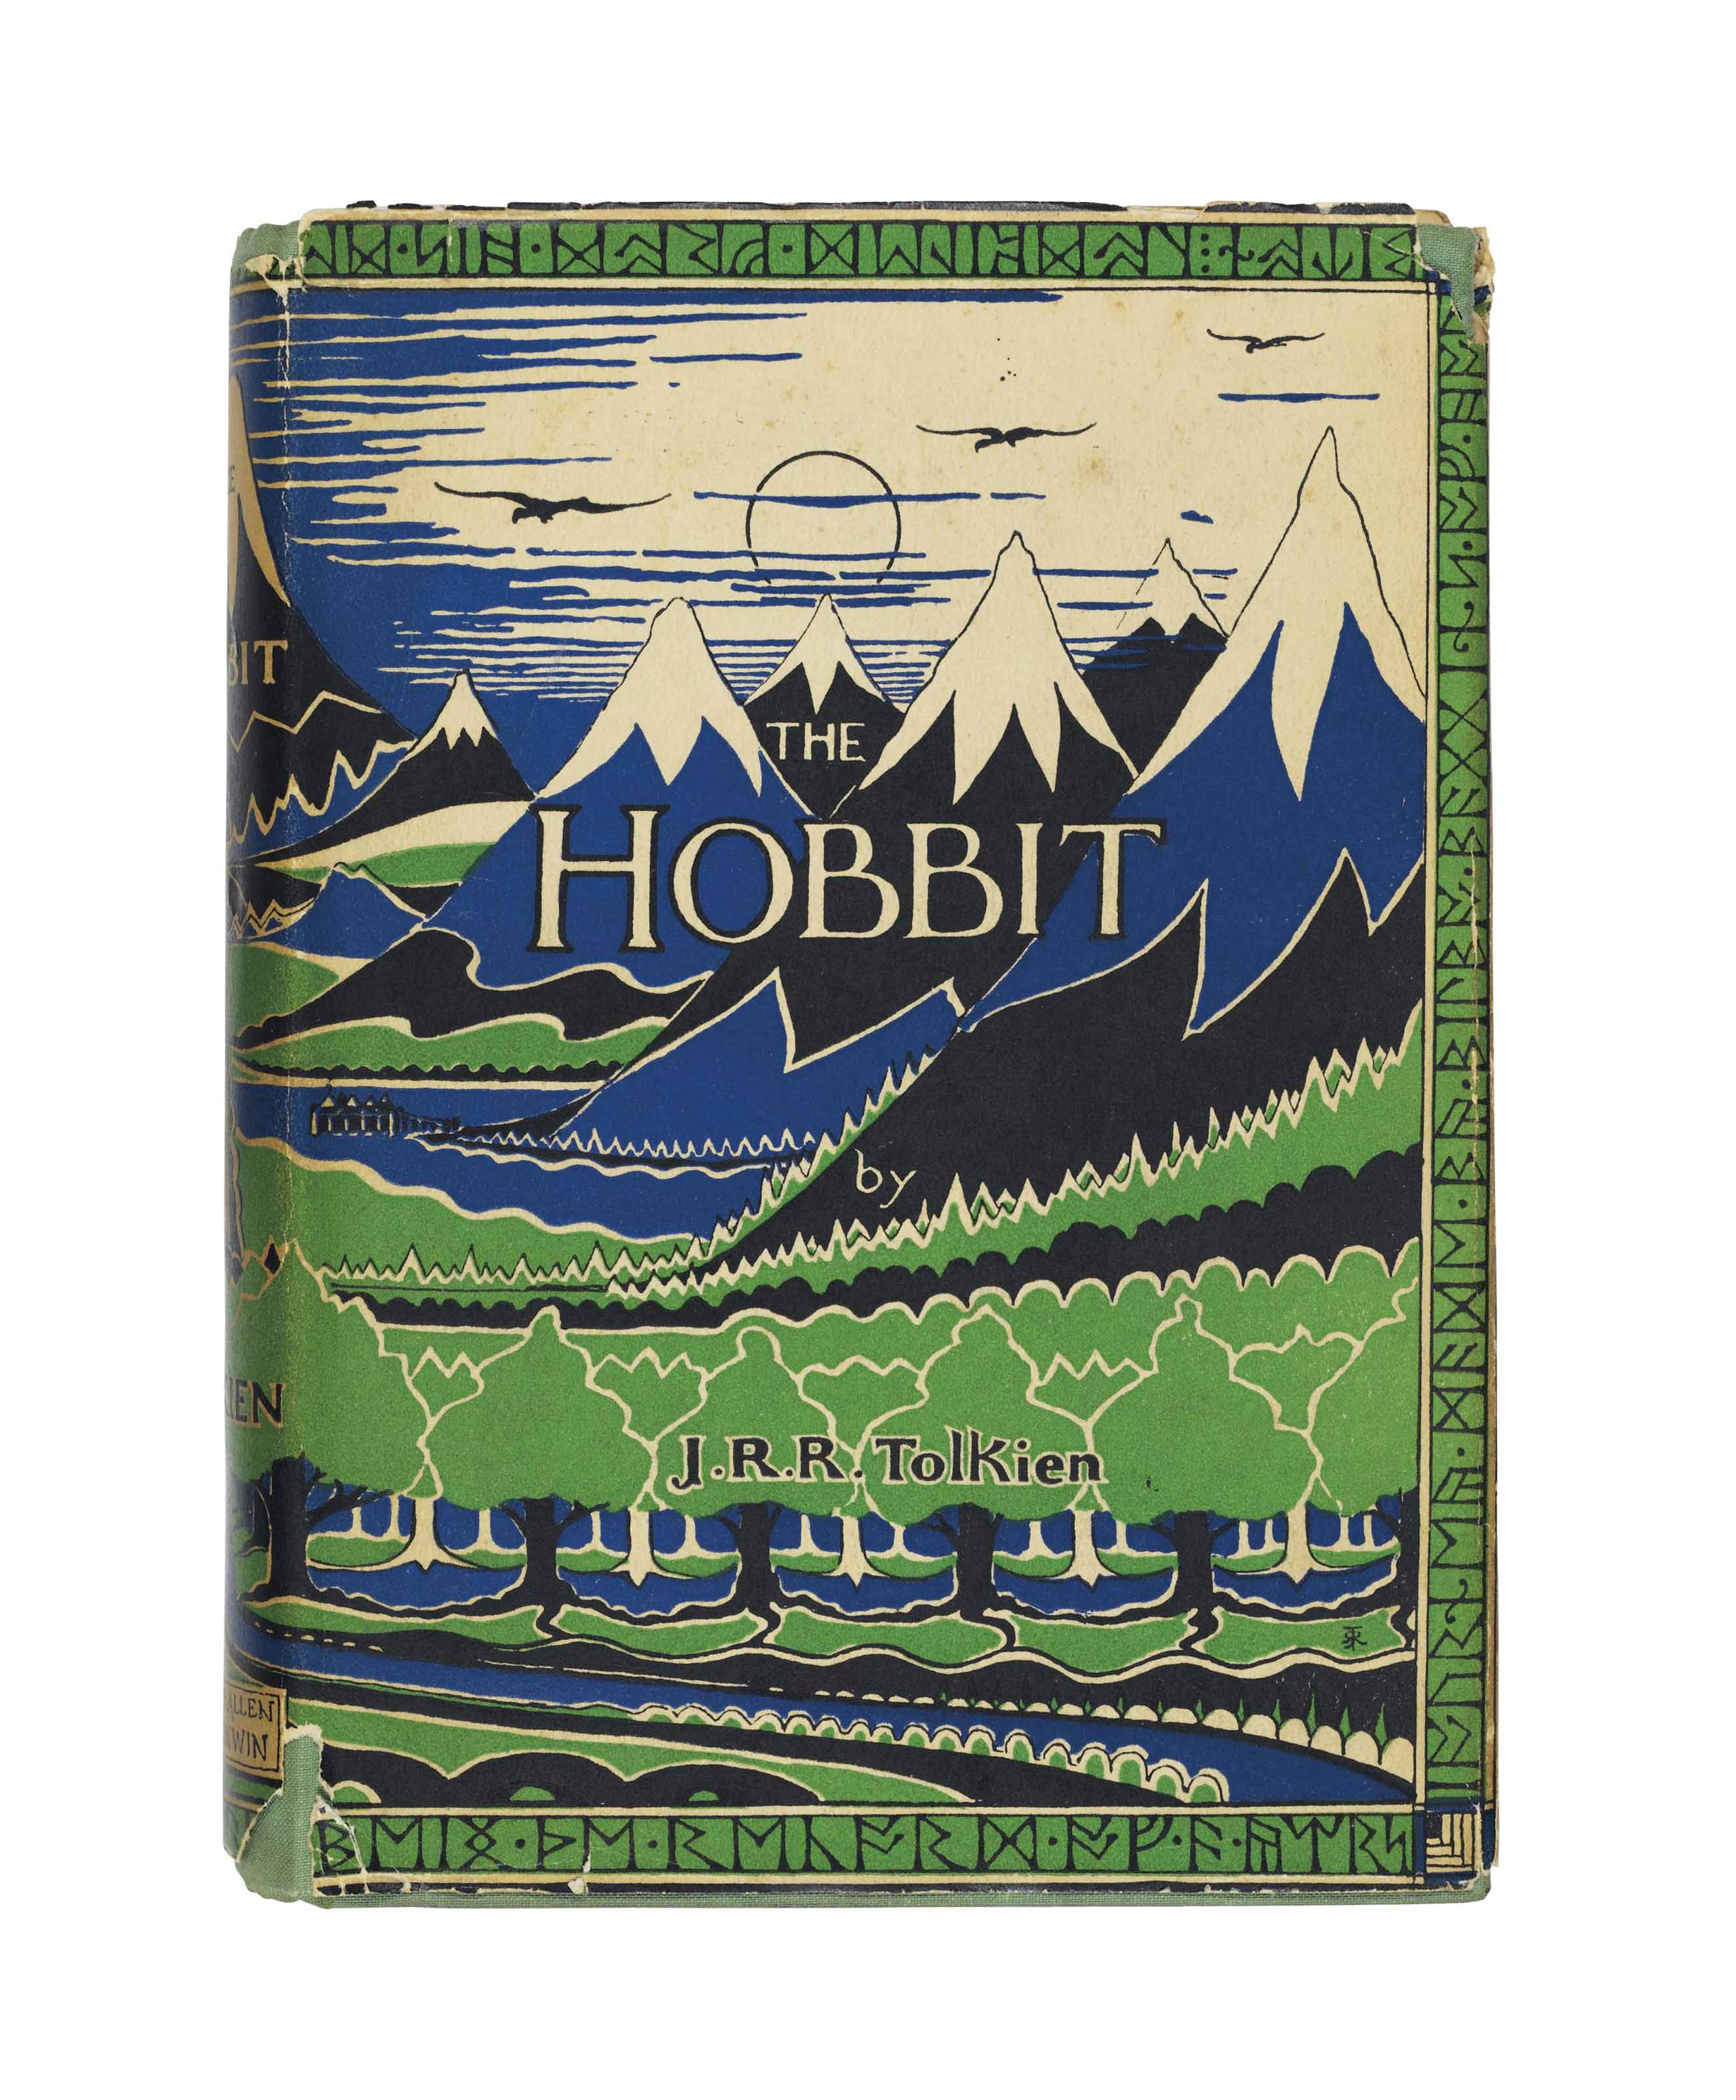 TOLKIEN, John Ronald Reuel (1892-1973). The Hobbit; or, There and Back Again. London: George Allen & Unwin Ltd., 1937. 8° (190 x132mm). Frontispiece and eight text illustrations by the author, inserted half-tone plate by the author, integral advertisement leaf at end. (Very faint scattered spotting to endpapers, front prelims, half-title and title, text-block fractionally split at gathering L, but the whole sound and clean.) Original publisher's light green cloth stamped in dark blue, off-white endpapers printed with Thror's map and a map of Wilderland in red and black after drawings by the author, top edge stained light green (top fore-corner of upper cover faintly bumped, faint spotting and dust-soiling to top edge), ORIGINAL PICTORIAL DUST-JACKET after a drawing by the author, with 'Dodgeson' corrected by hand on rear flap (price-clipped, edges frayed with associated small tears and chips to joints and top margin of rear cover, larger chipping to head and tail of spine, light